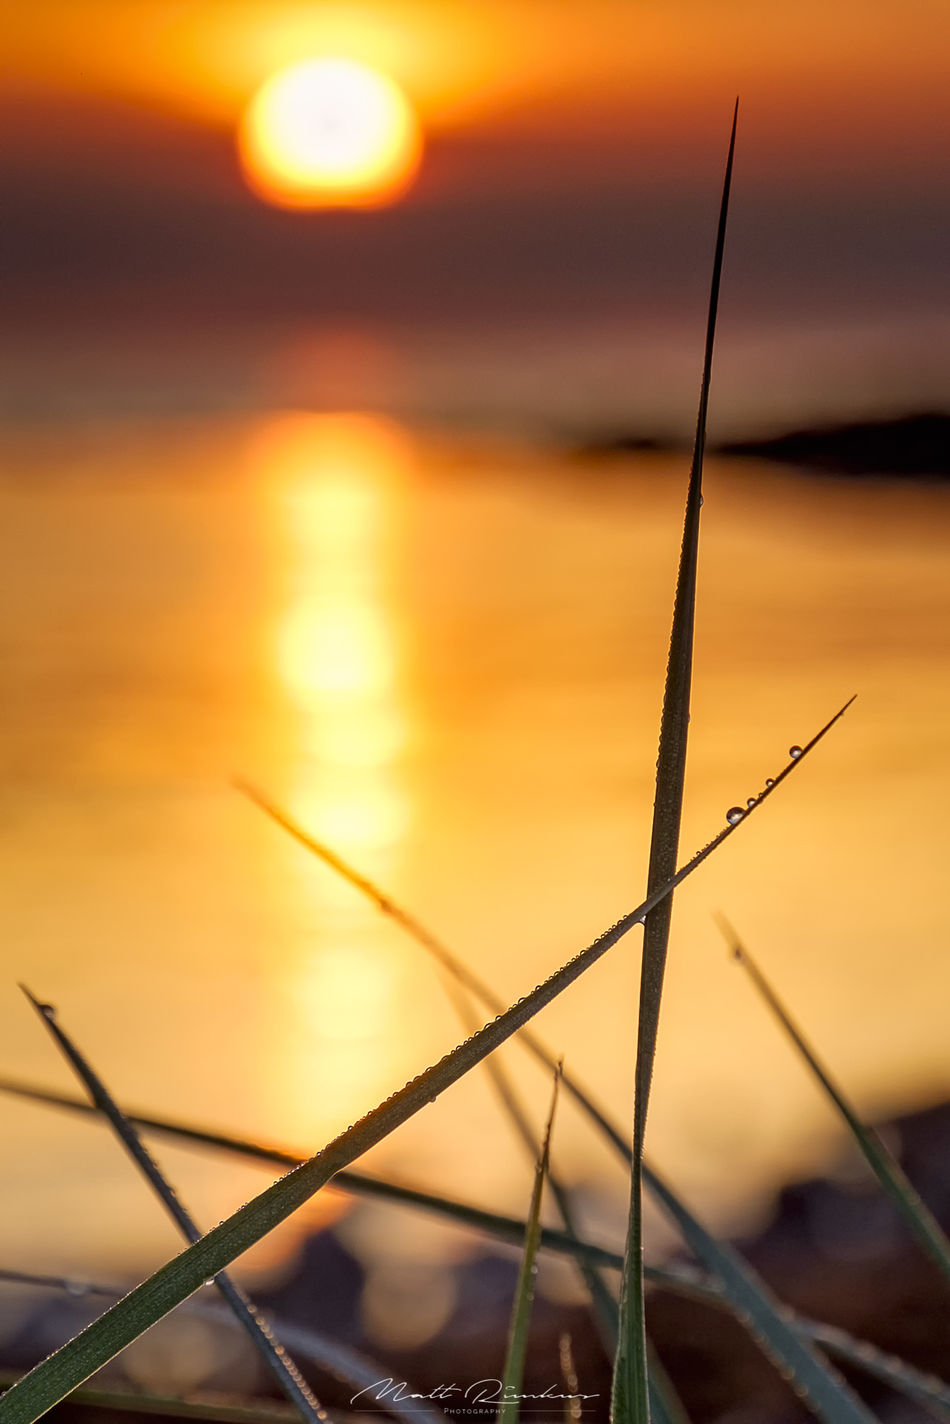 Walk Me Out In The Morning Dew Sun rising behind some reeds covered with dew drops Baltic Sea Beauty In Nature Close-up Day Depth Of Field Dew Droplets Focus On Foreground Golden Hour Morning Morning Light Nature No People Orange Color Outdoors Reeds Relaxing Sea Serenity Sky Sun Sunrise Sunset Tranquility Water First Eyeem Photo